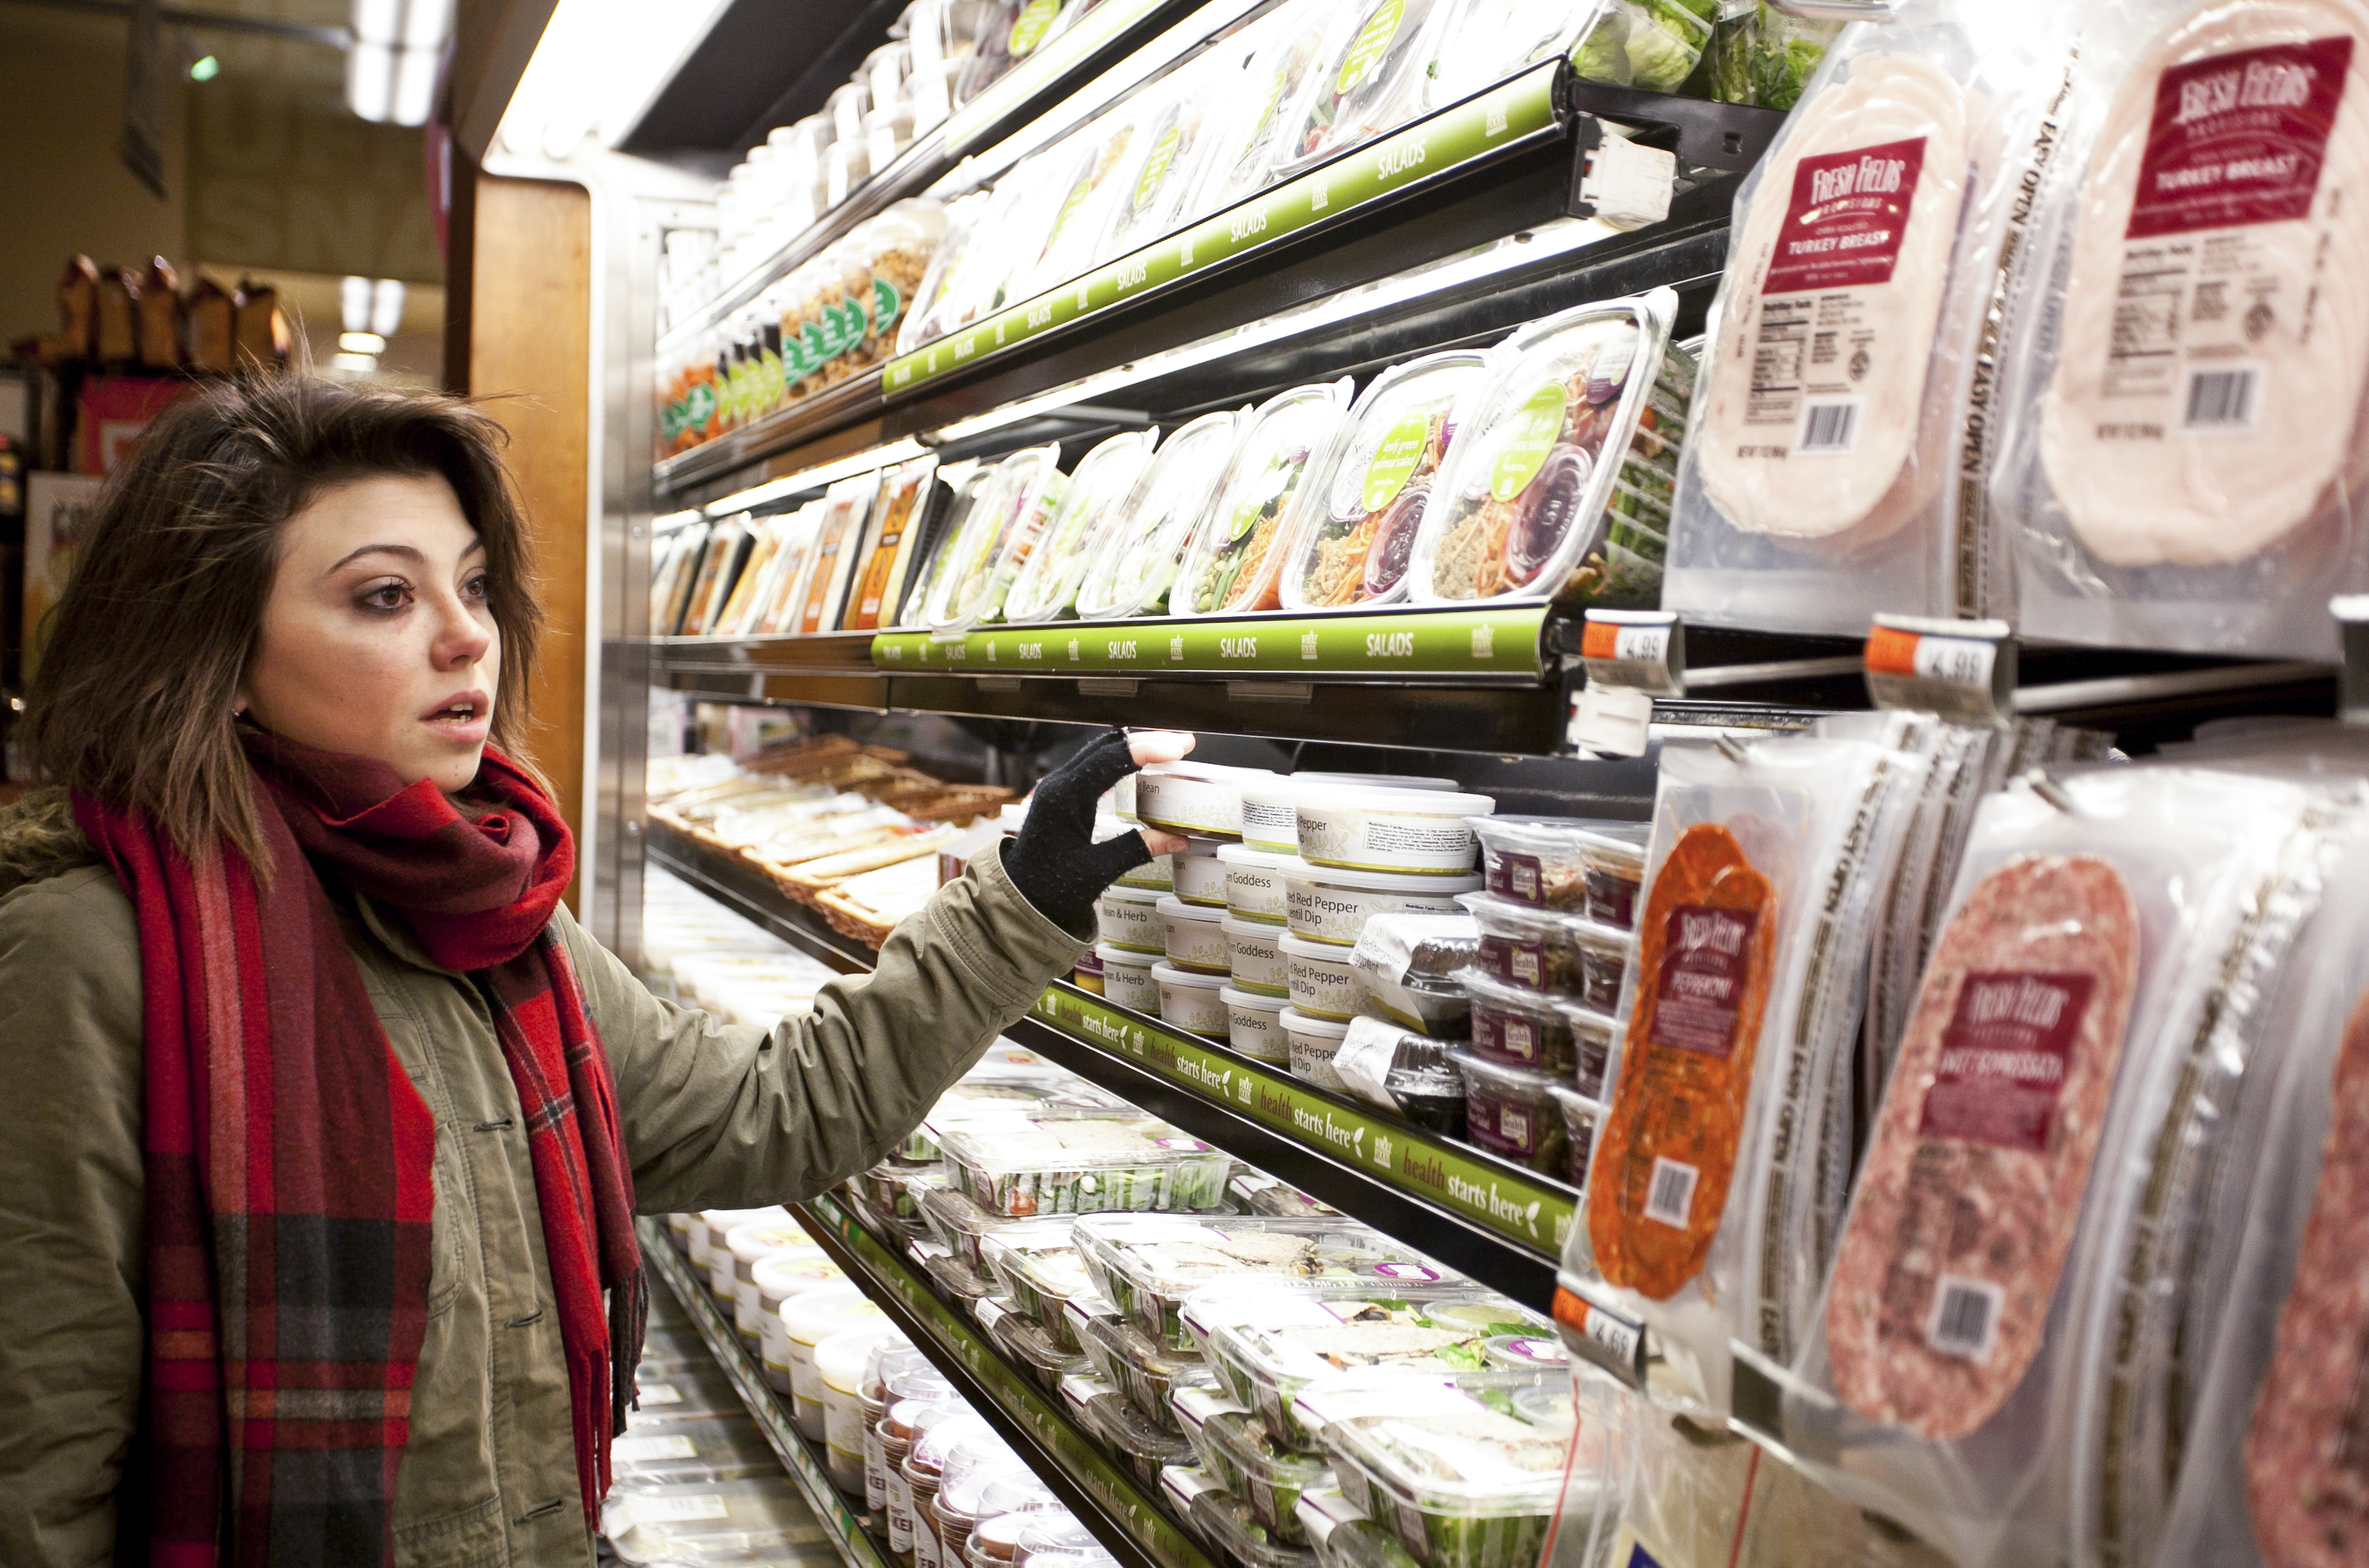 A grocery shopper at a Whole Foods Market in Manhattan, New York City. (Amal Chen/Epoch Times)